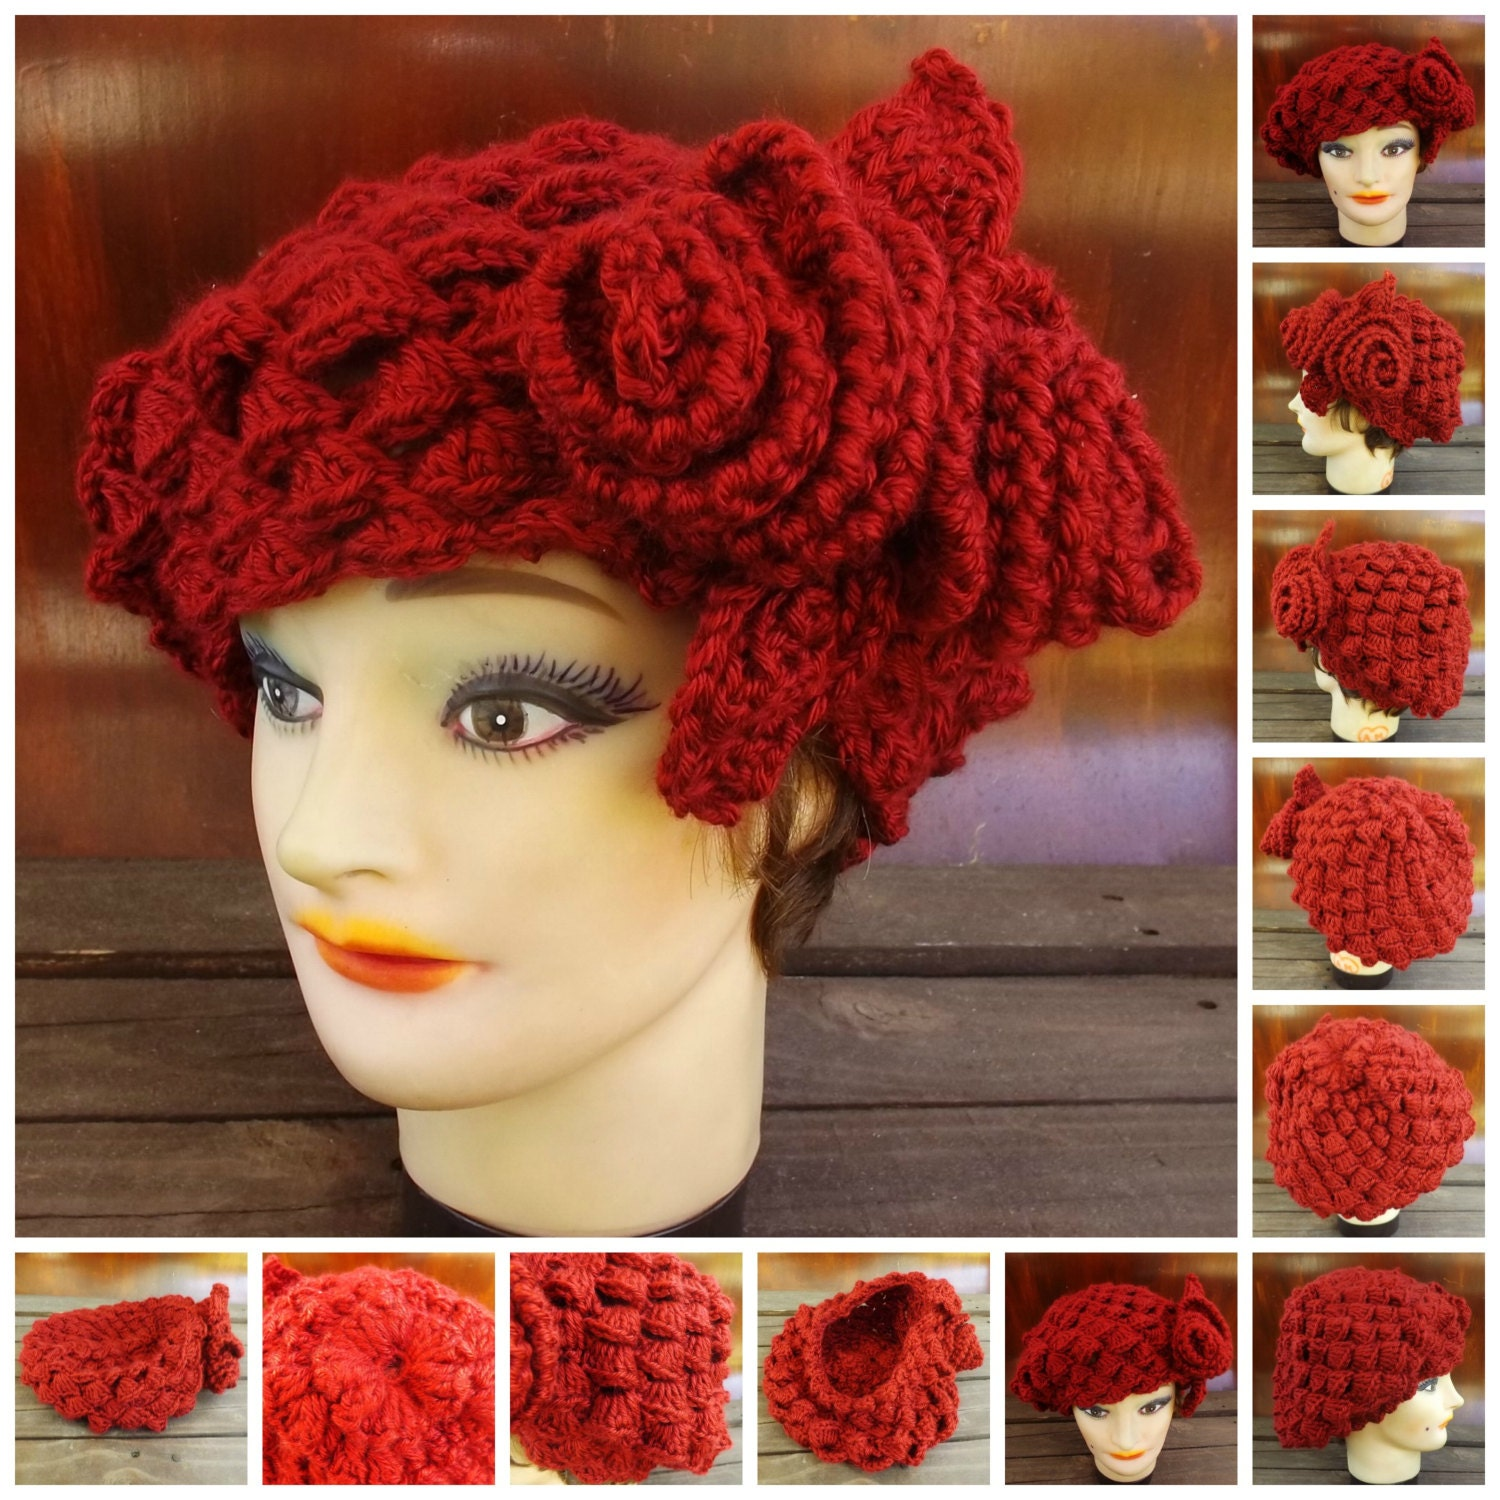 Crochet Pattern Womens Hat : Crochet Pattern Hat Womens Crochet Hat by strawberrycouture